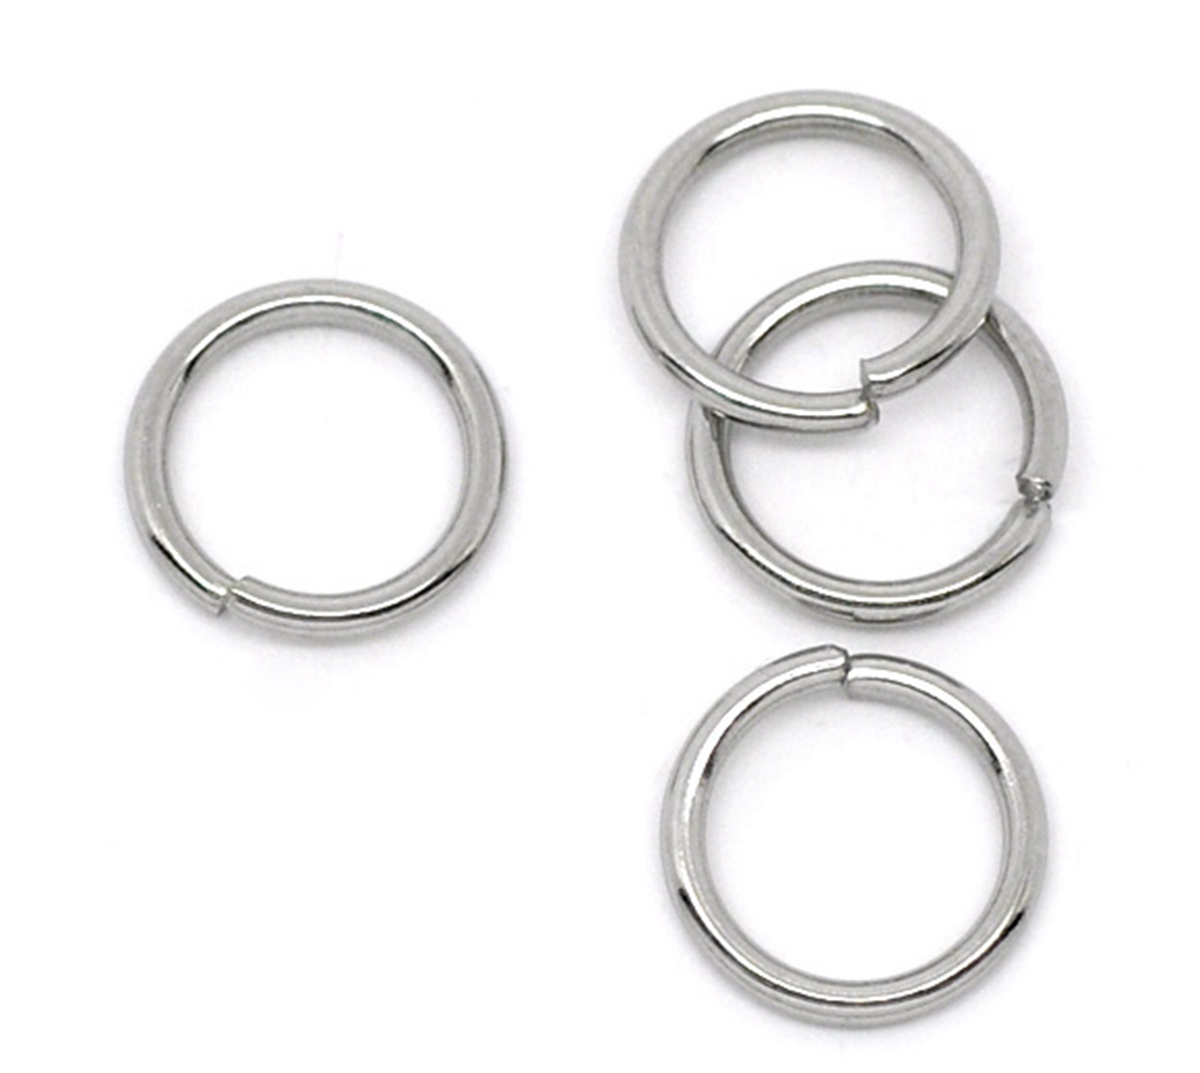 Wholesale Lots Stainless Steel Open Jump Rings 8mm Dia Findings